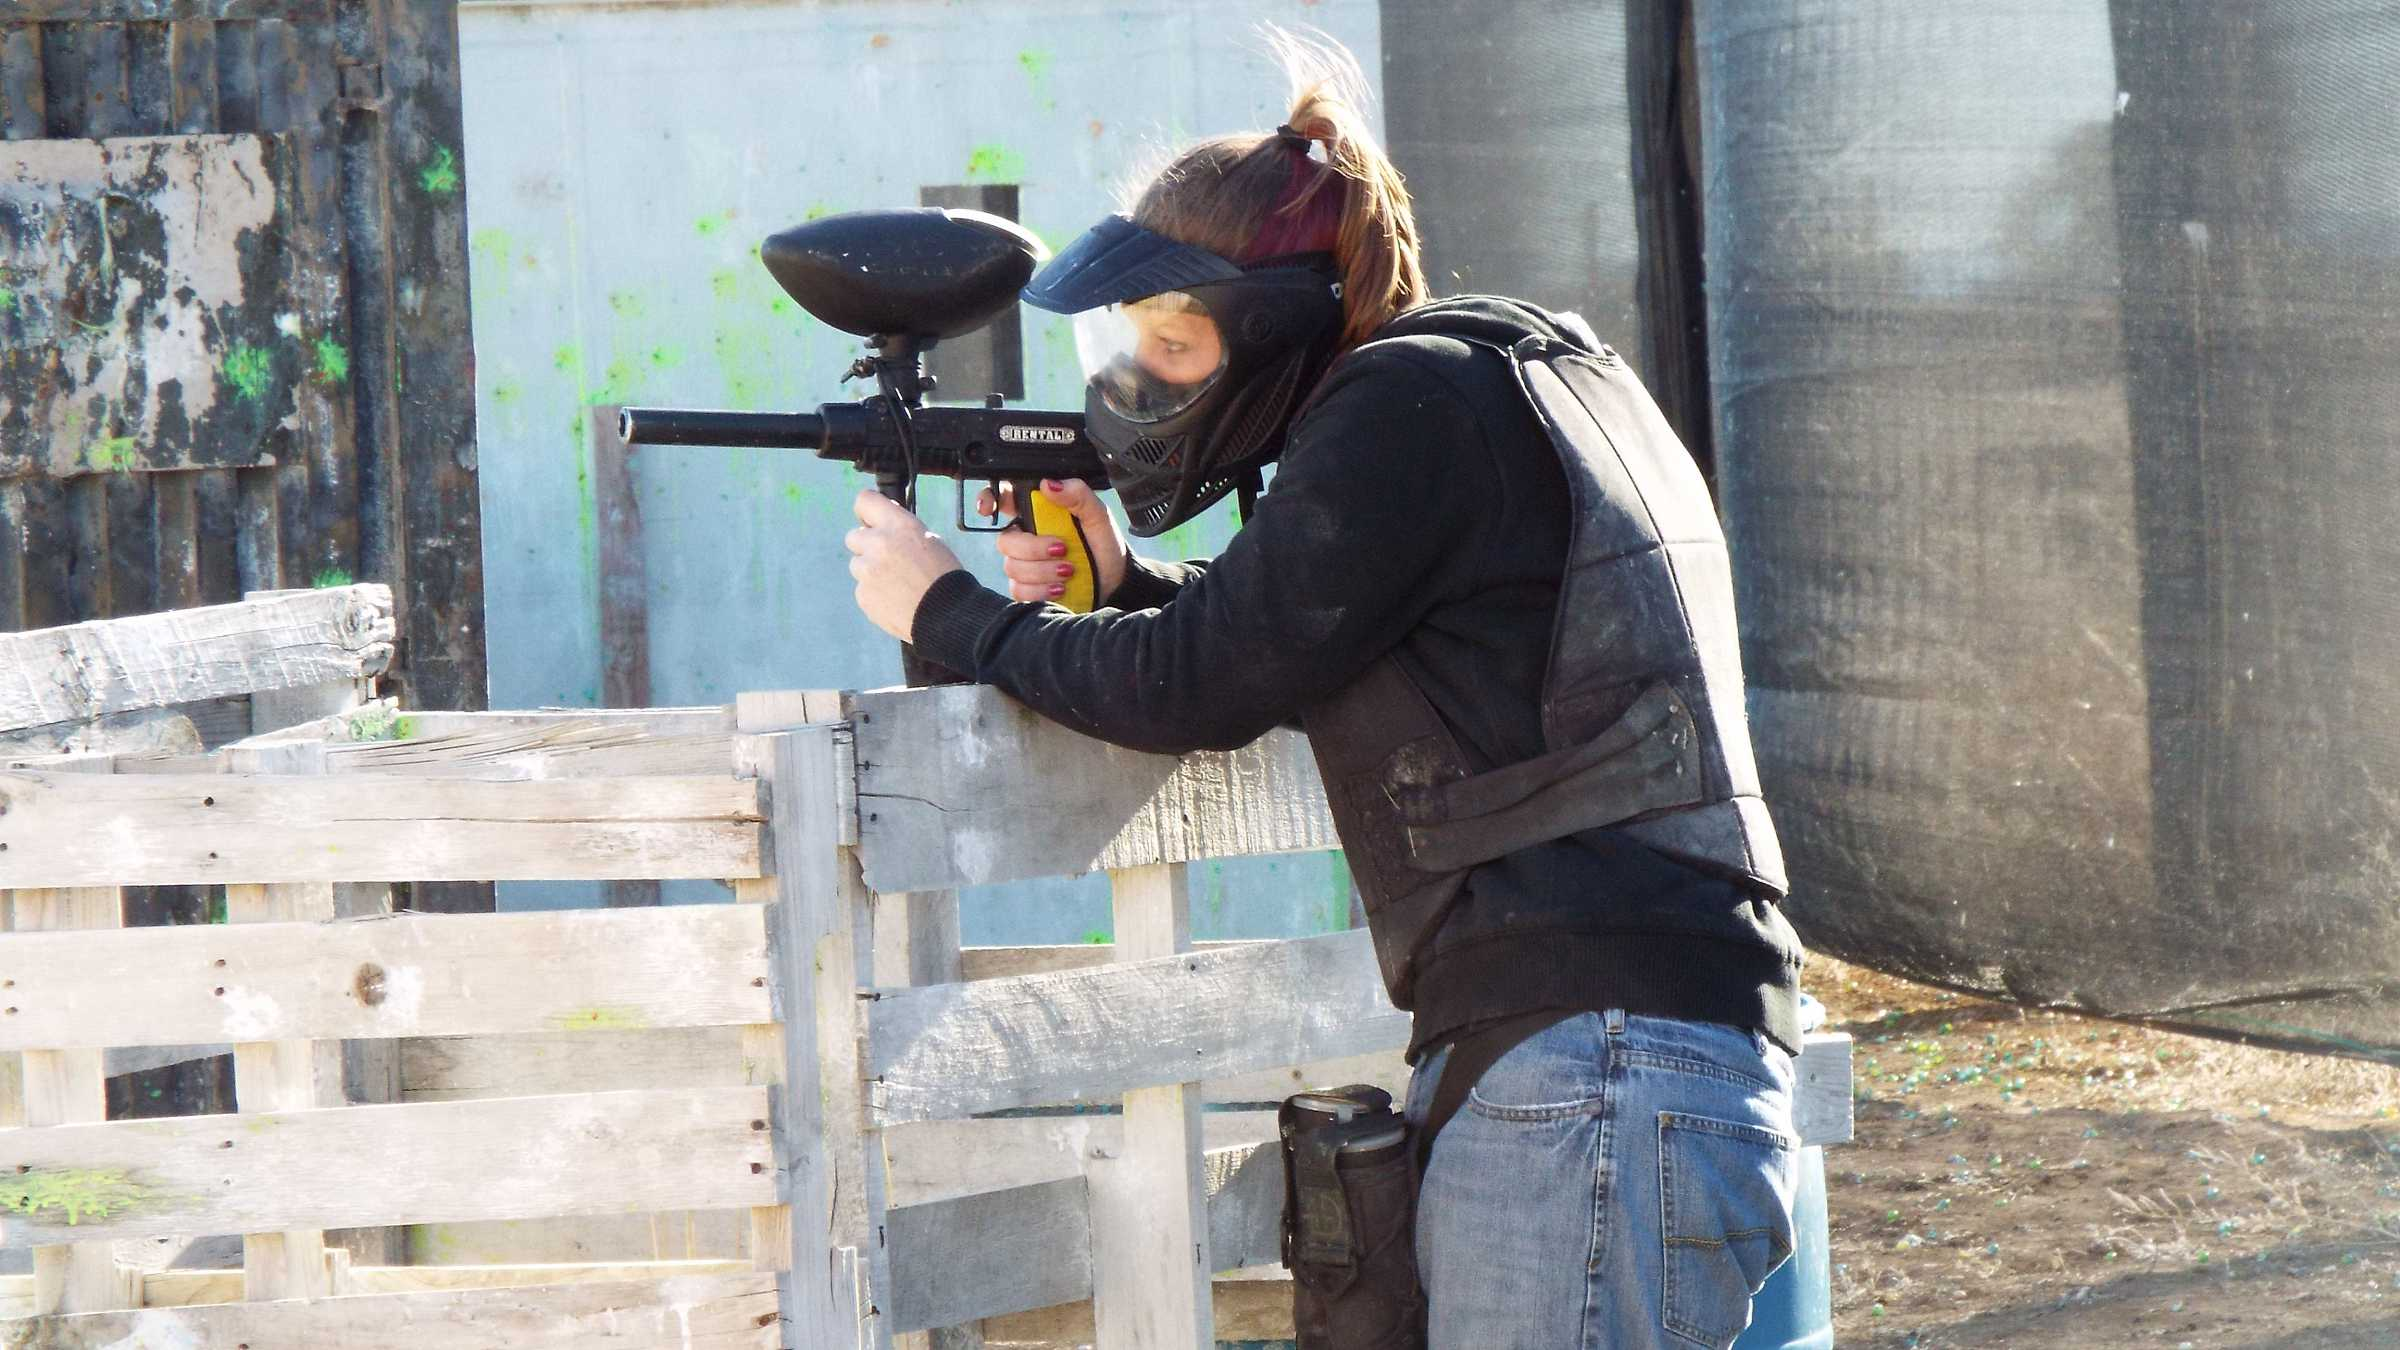 Woman aiming and shooting paintball gun